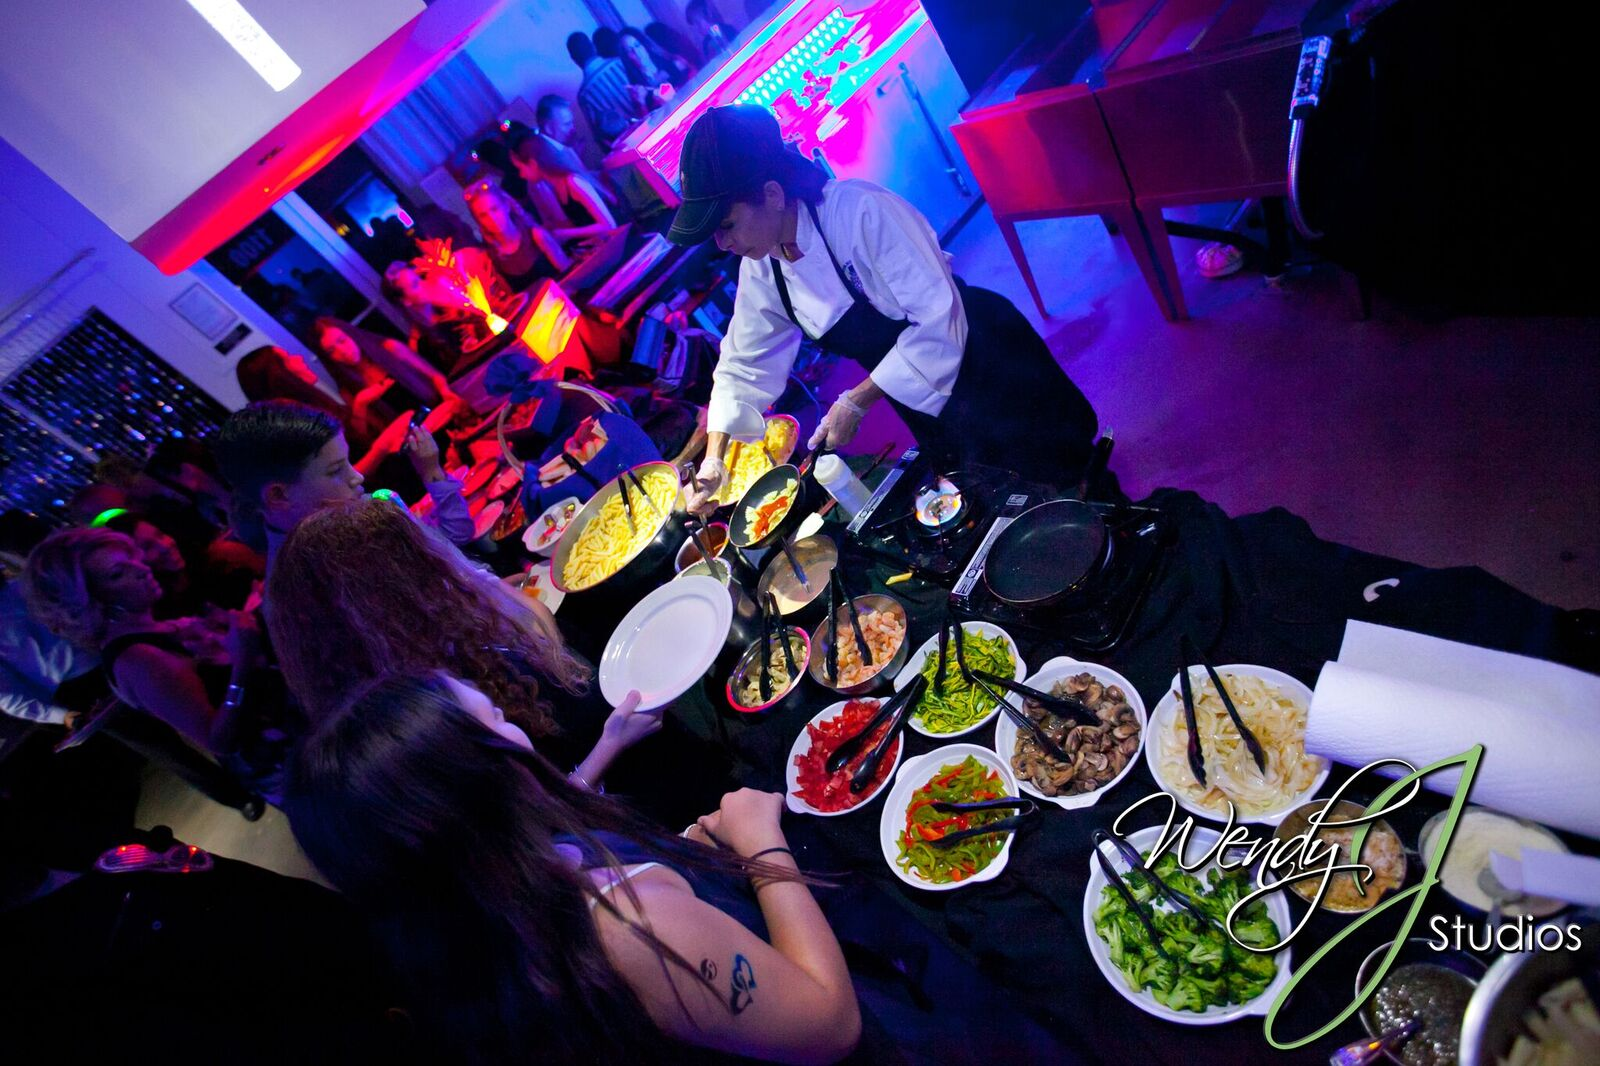 Catering Services In Weston